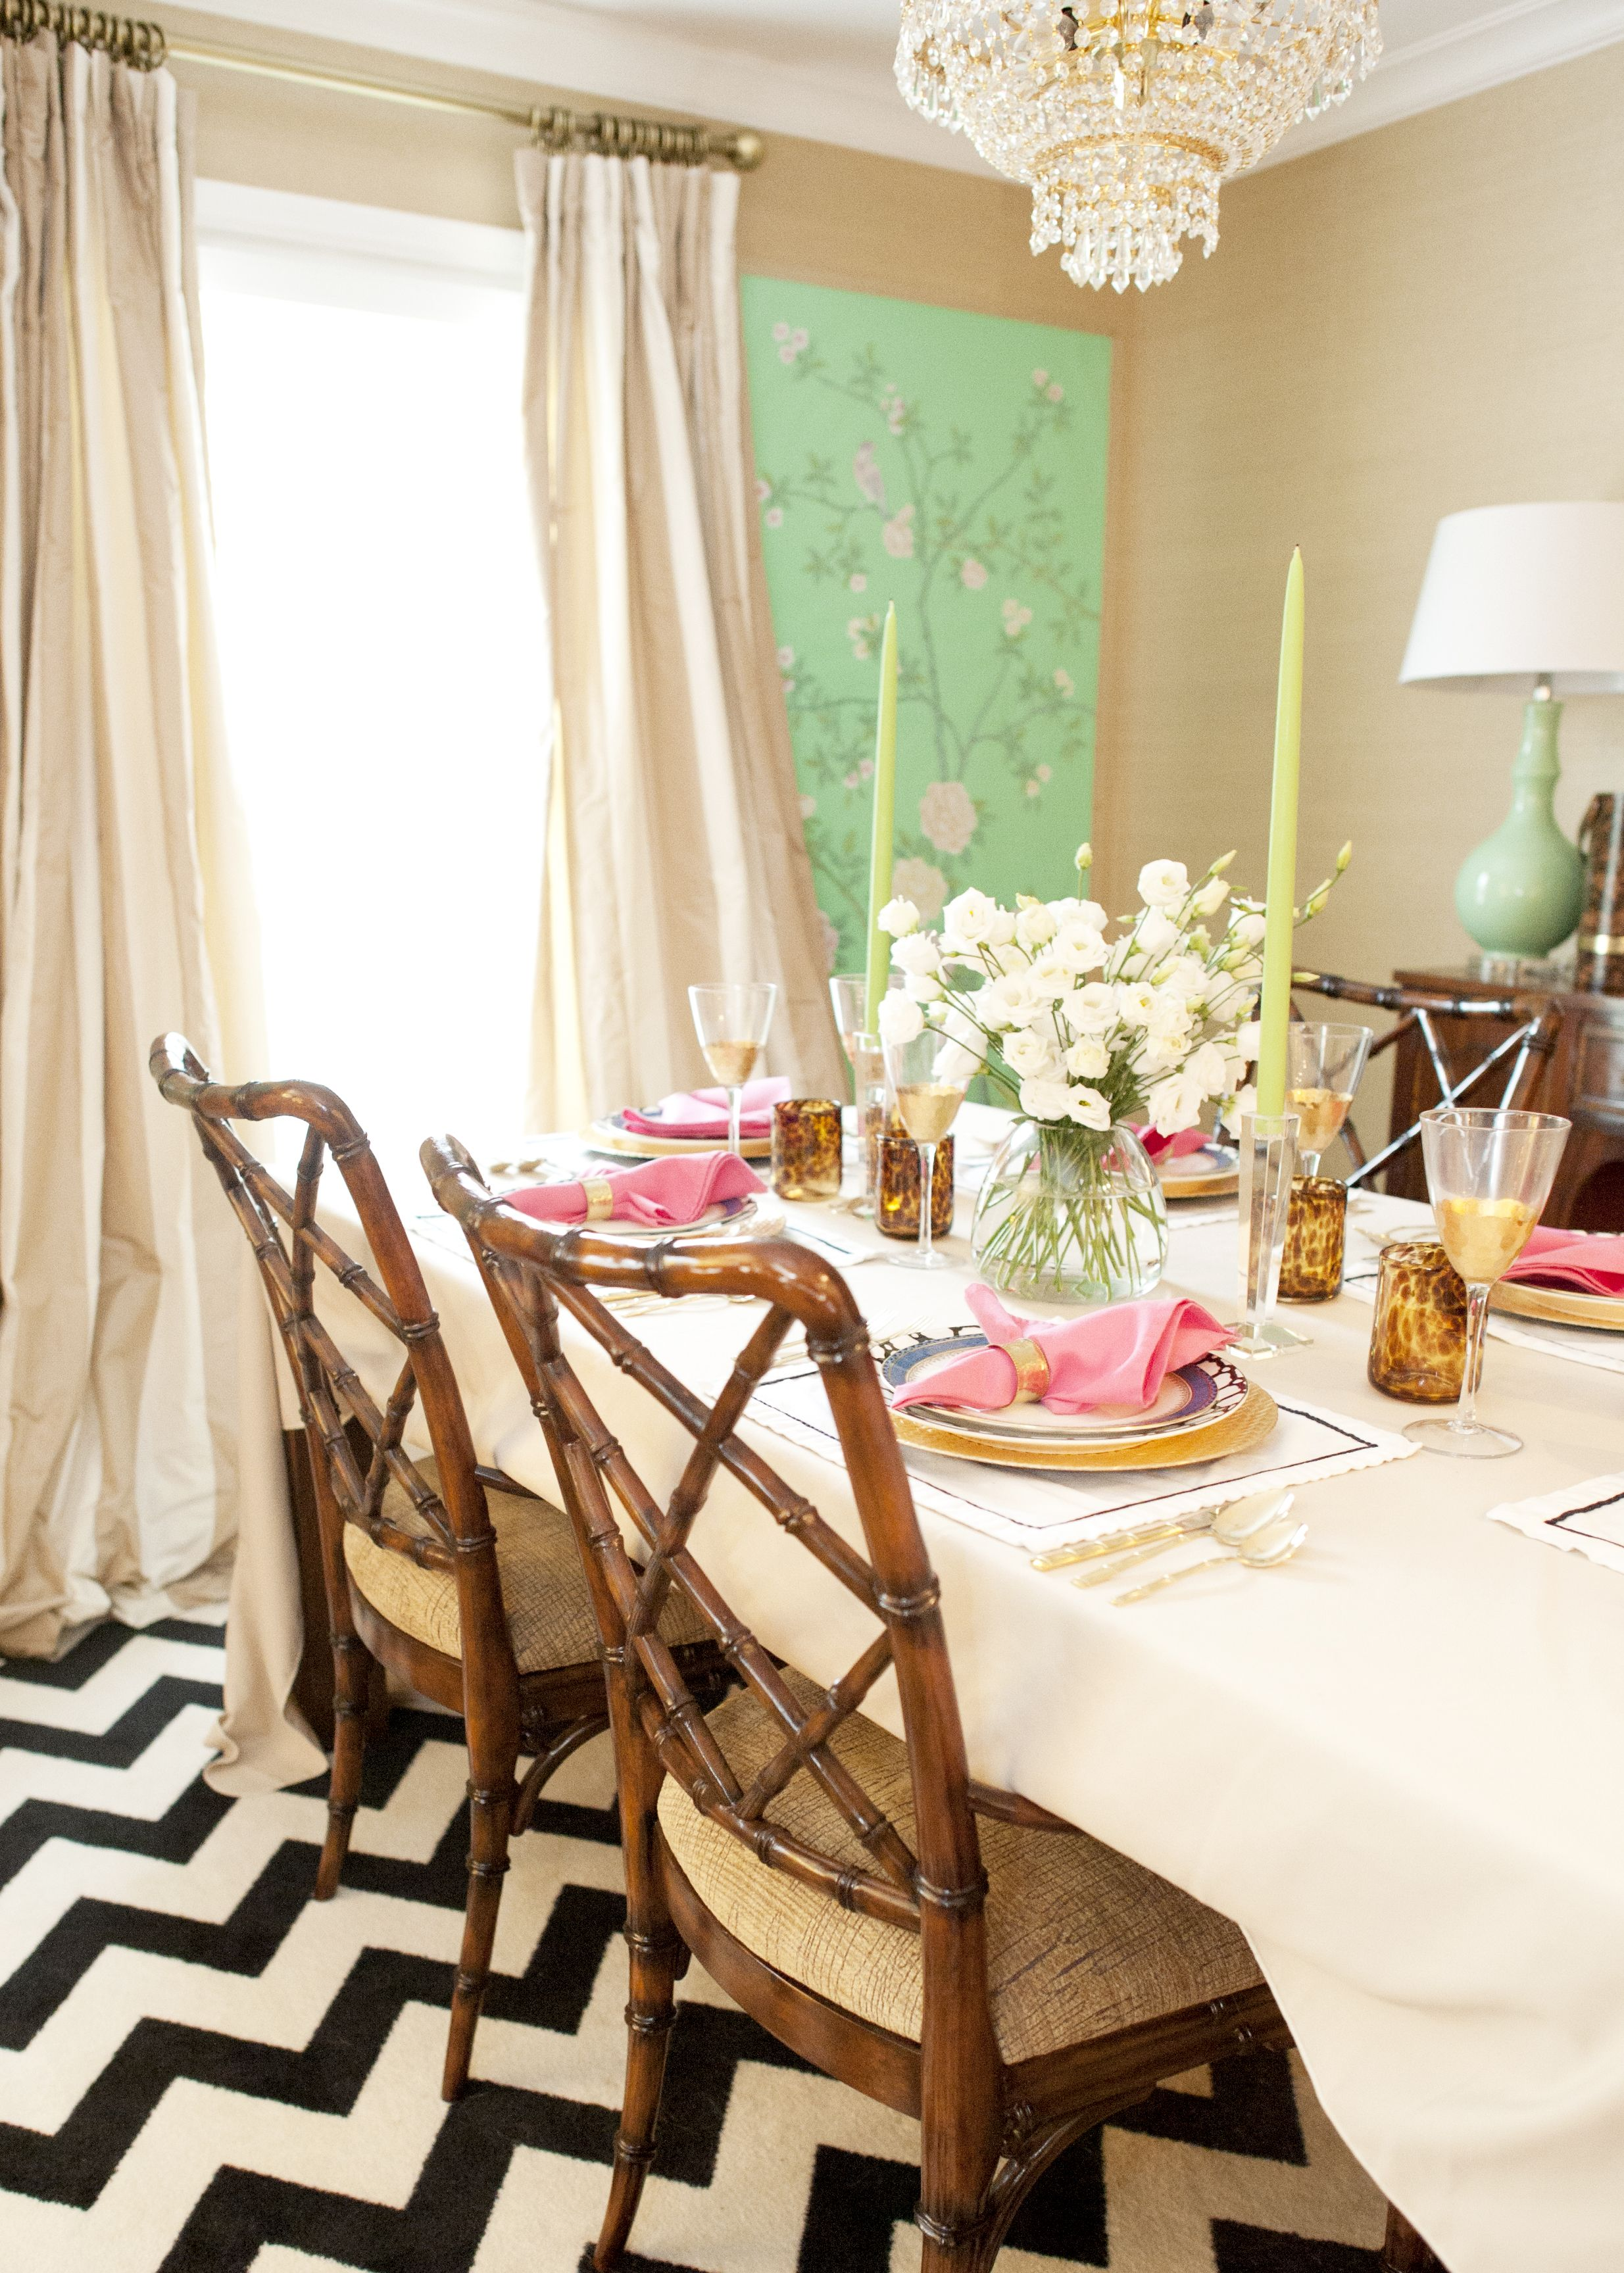 Jessie Epley Short Home Tour Dining Room Styling Pink Gold Mint Bamboo Chairs Chevron Rug Curtain Rod Crystal Chandelier Chinoiserie